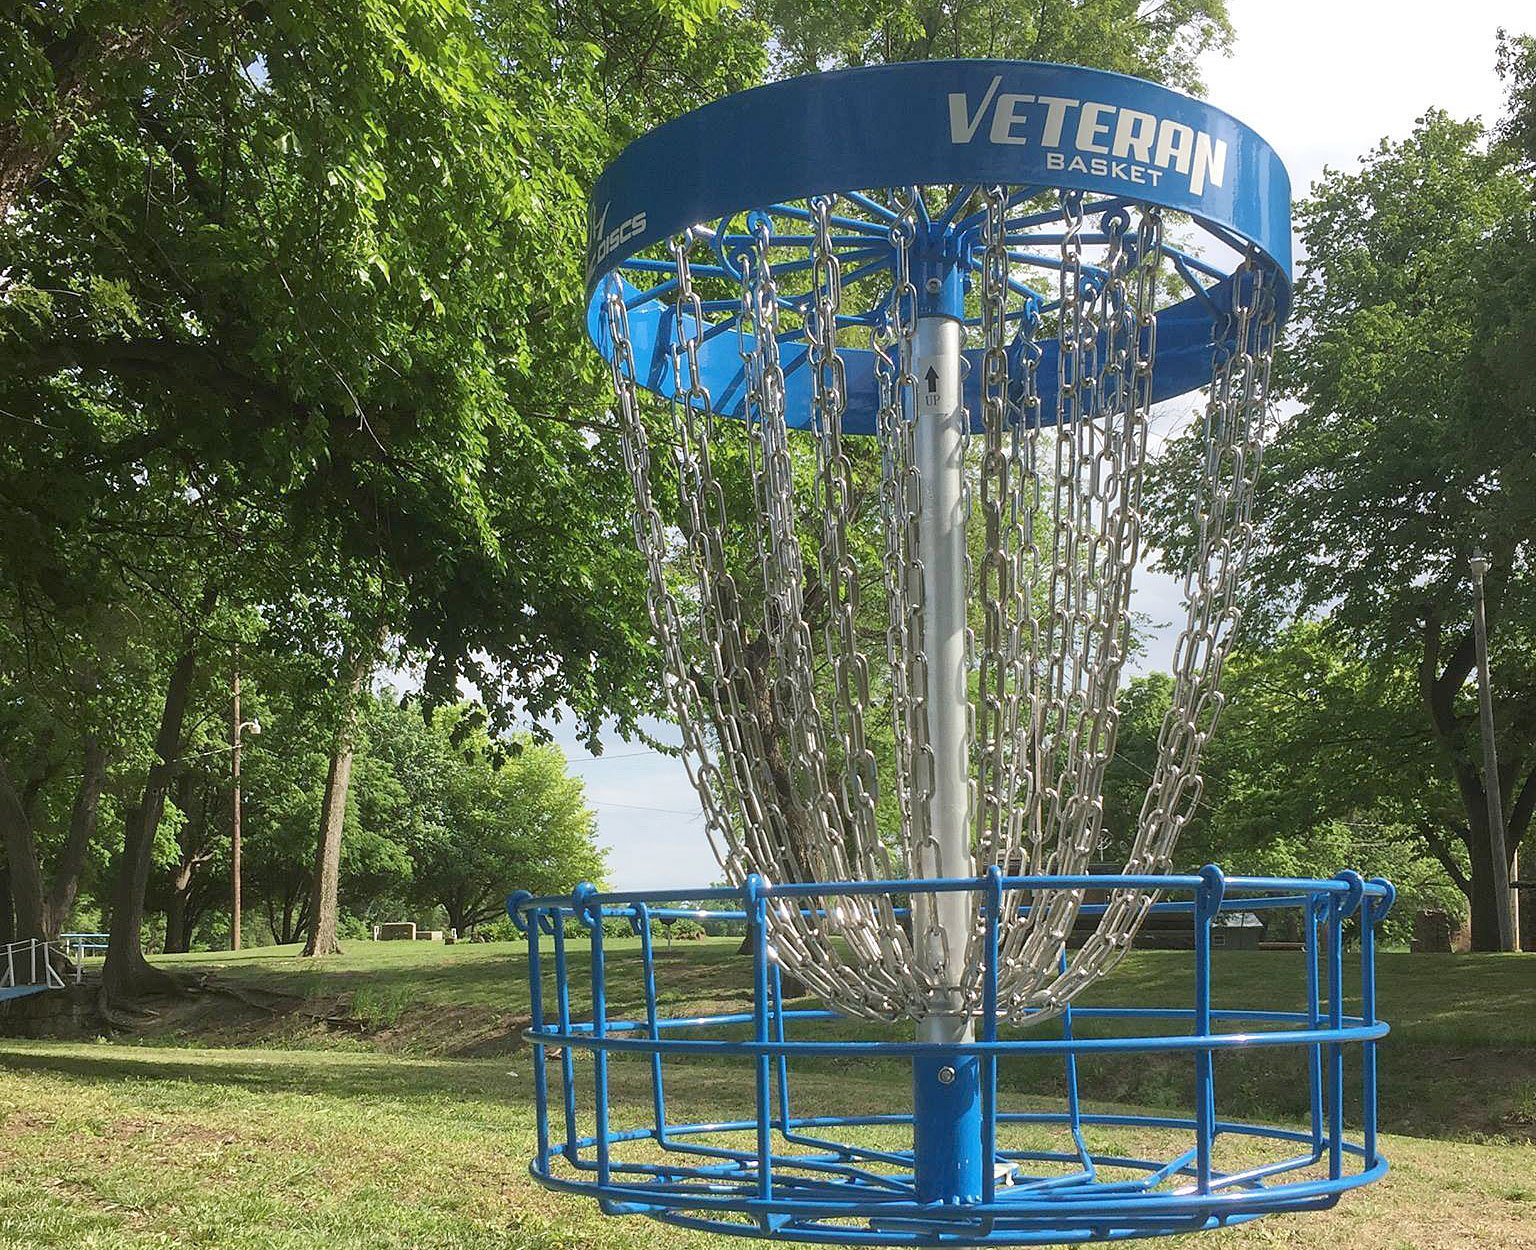 Disc golf course in Lincoln, KS